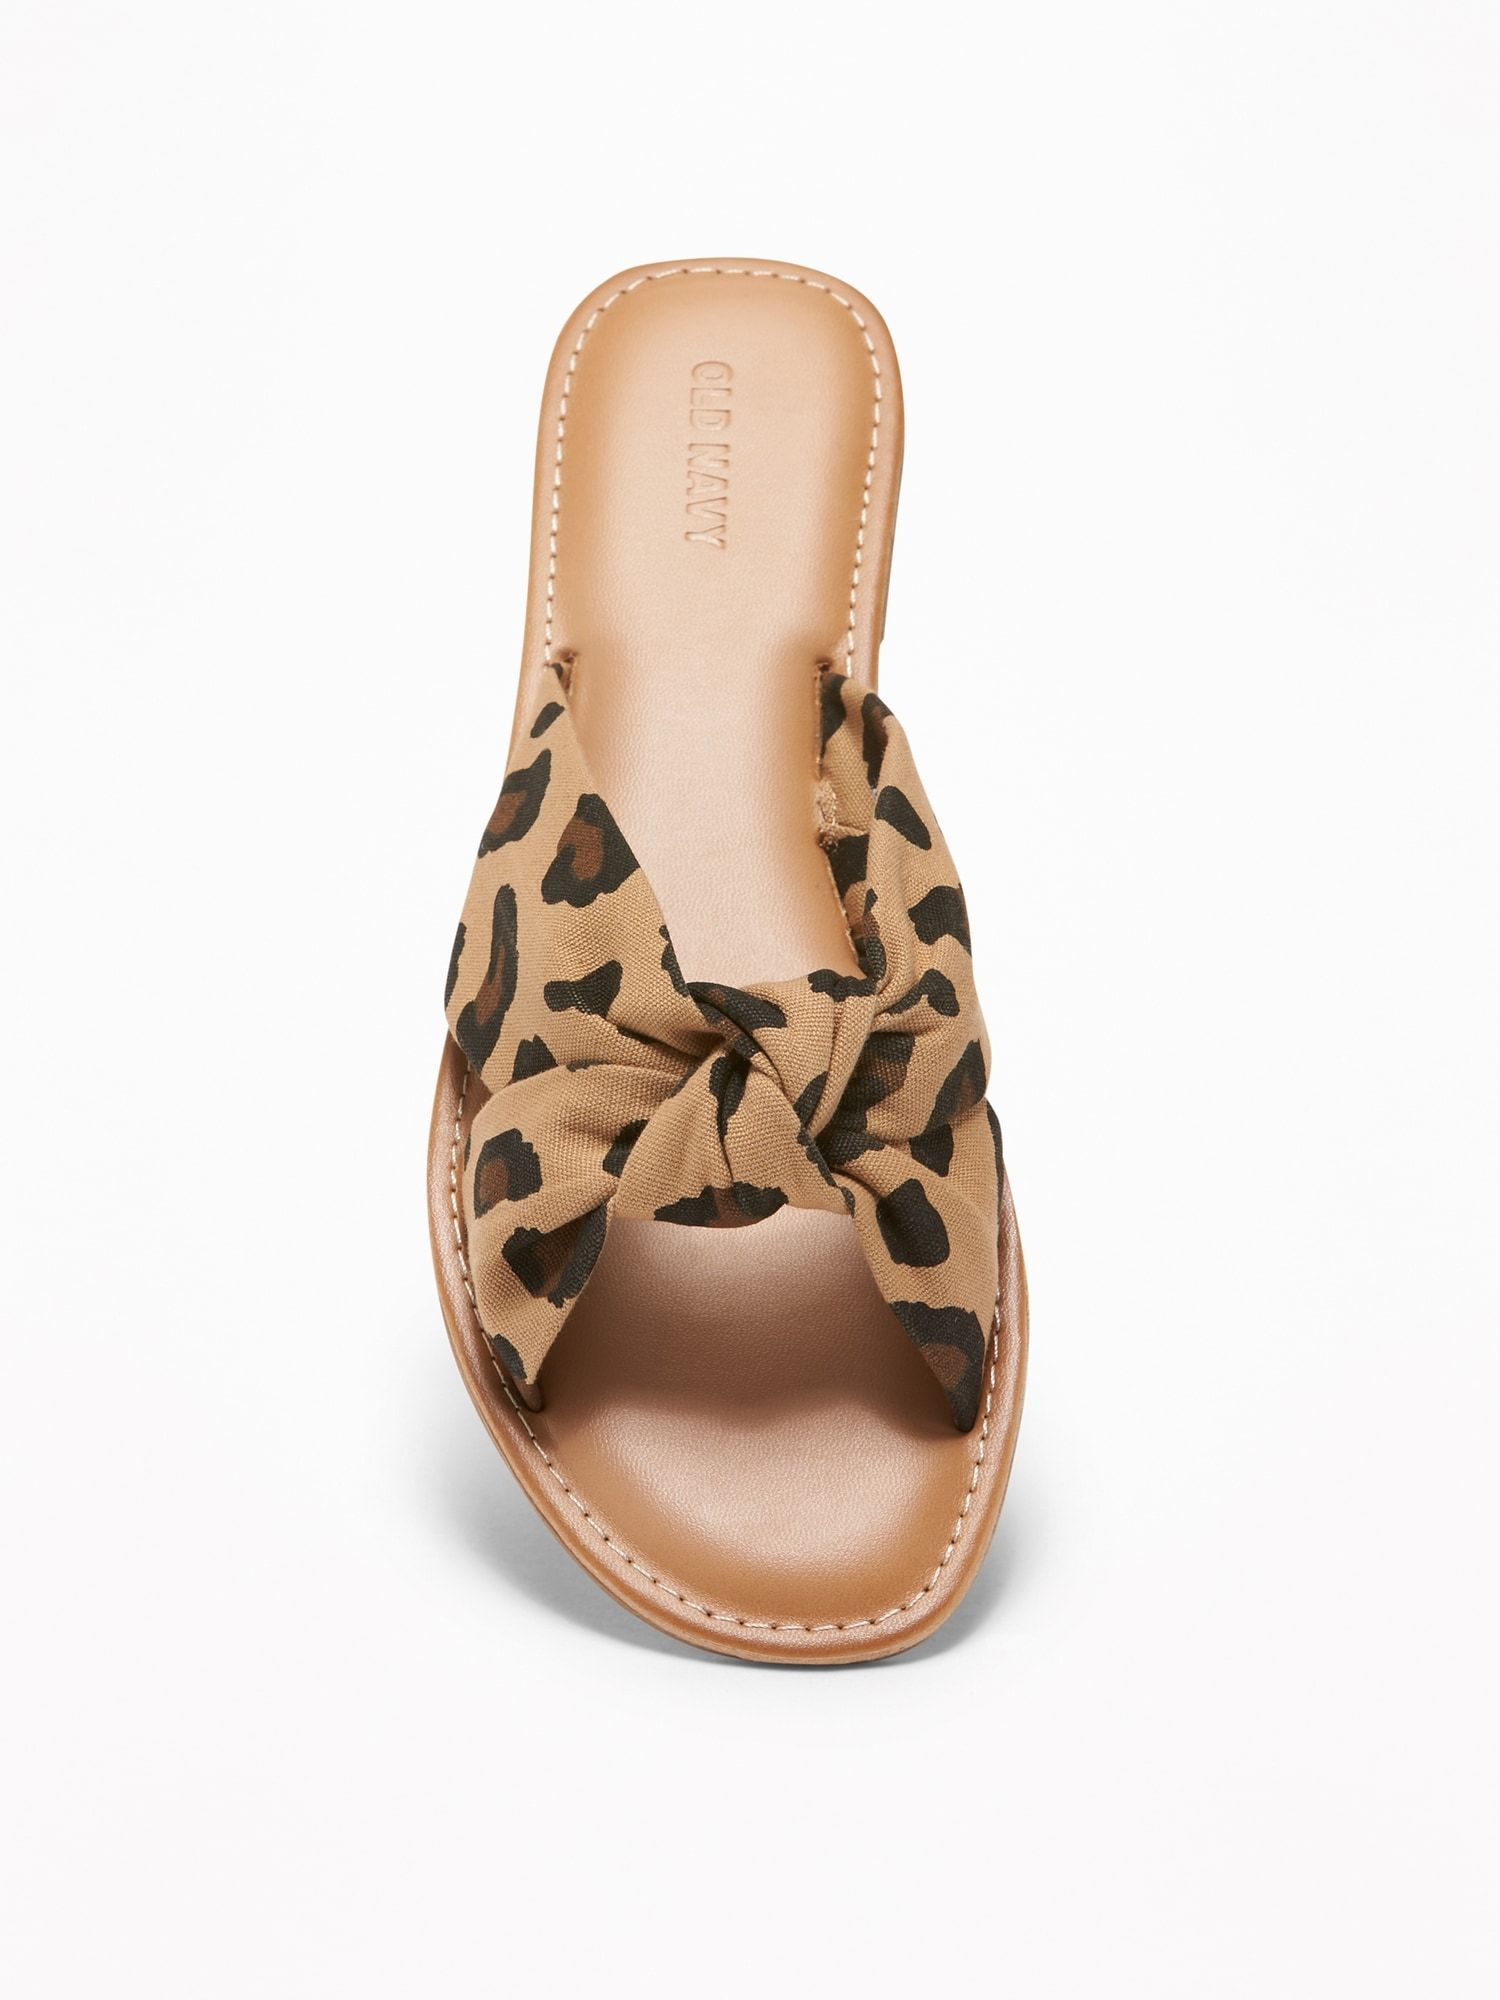 KnottedTwist Slide Sandals for Women Old Navy Womens